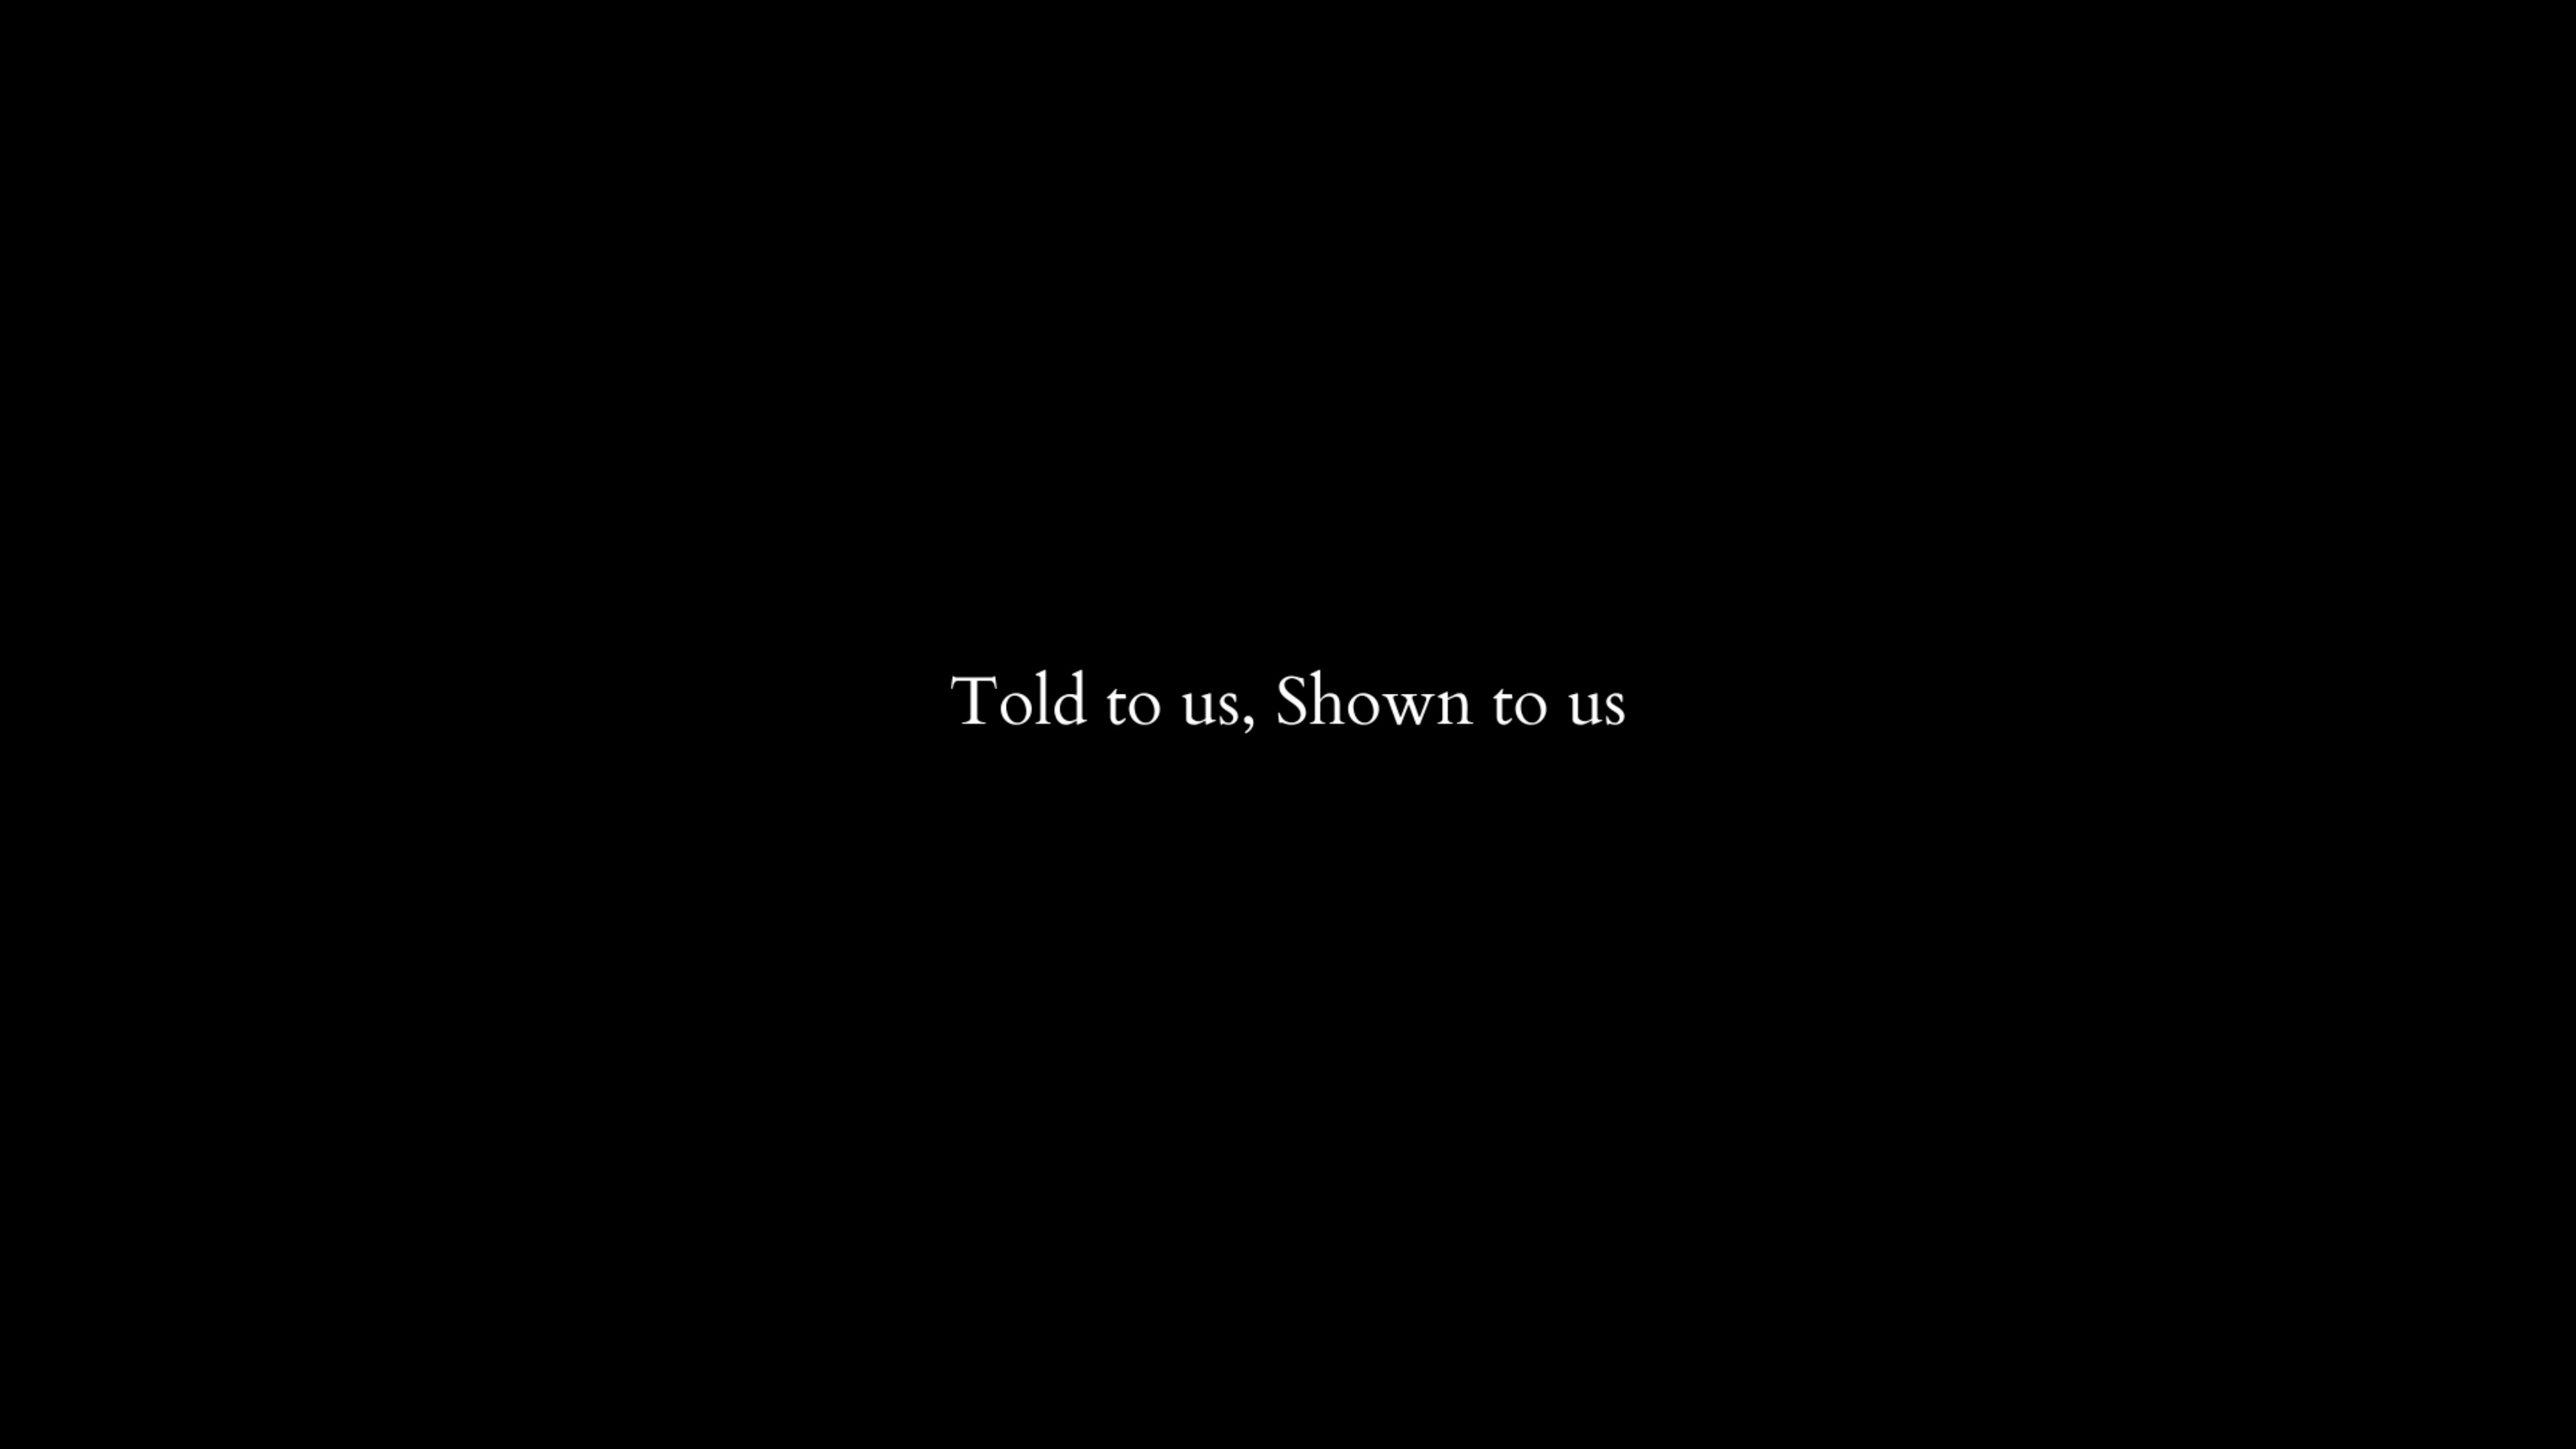 Told to us, Shown to us